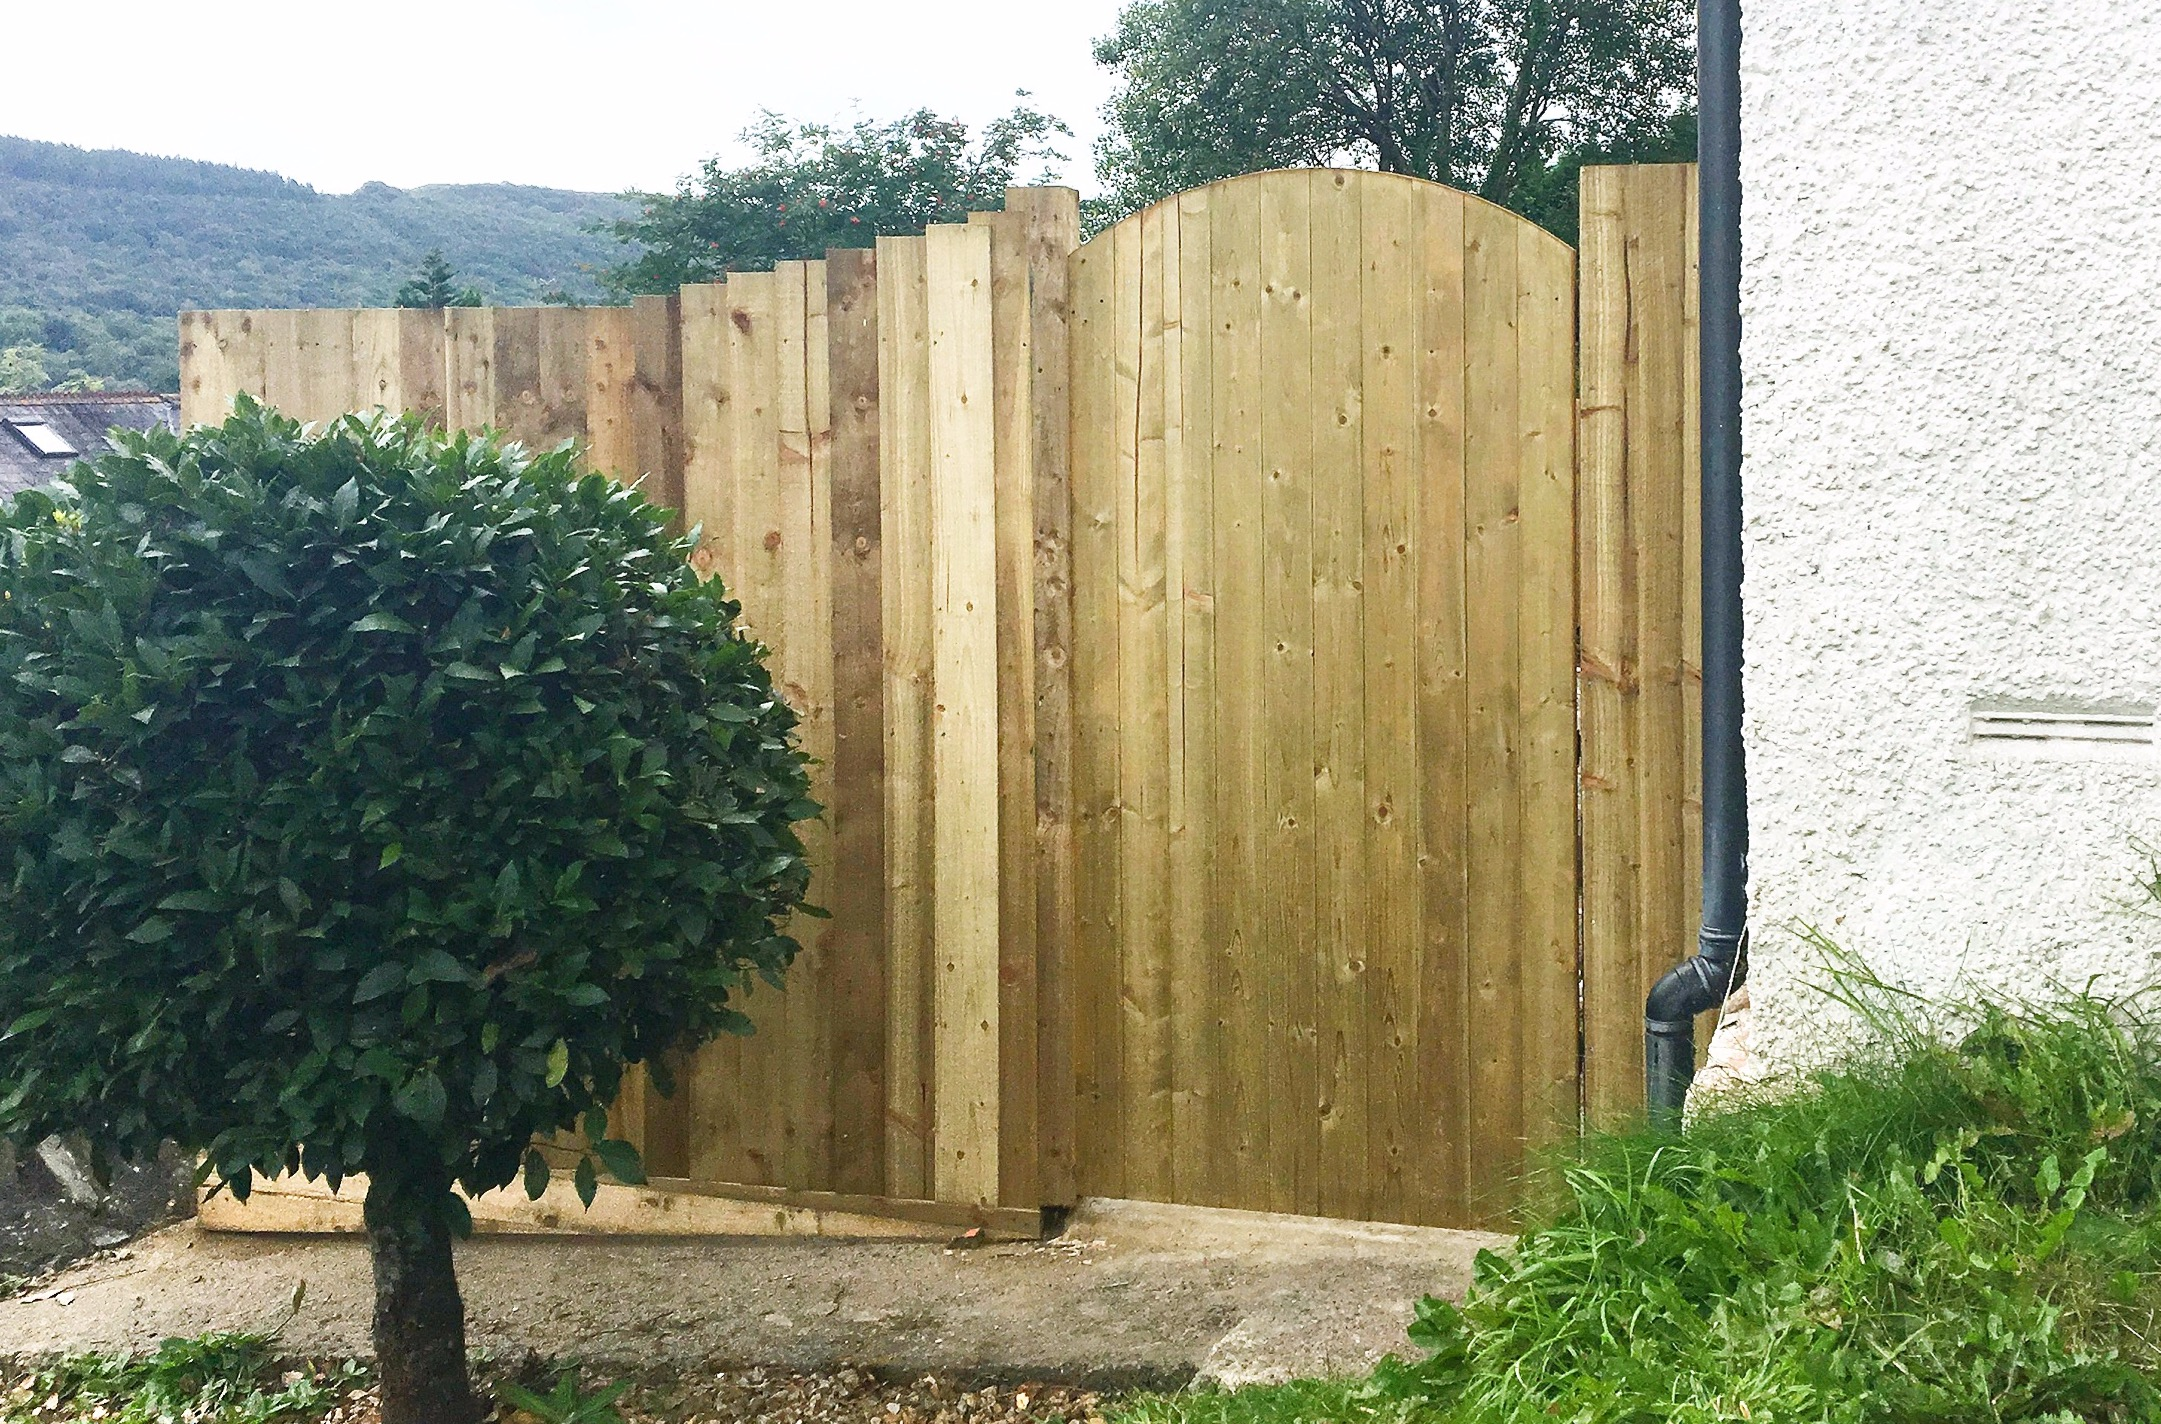 Fence & Gate by Helping AND in Pontardaw